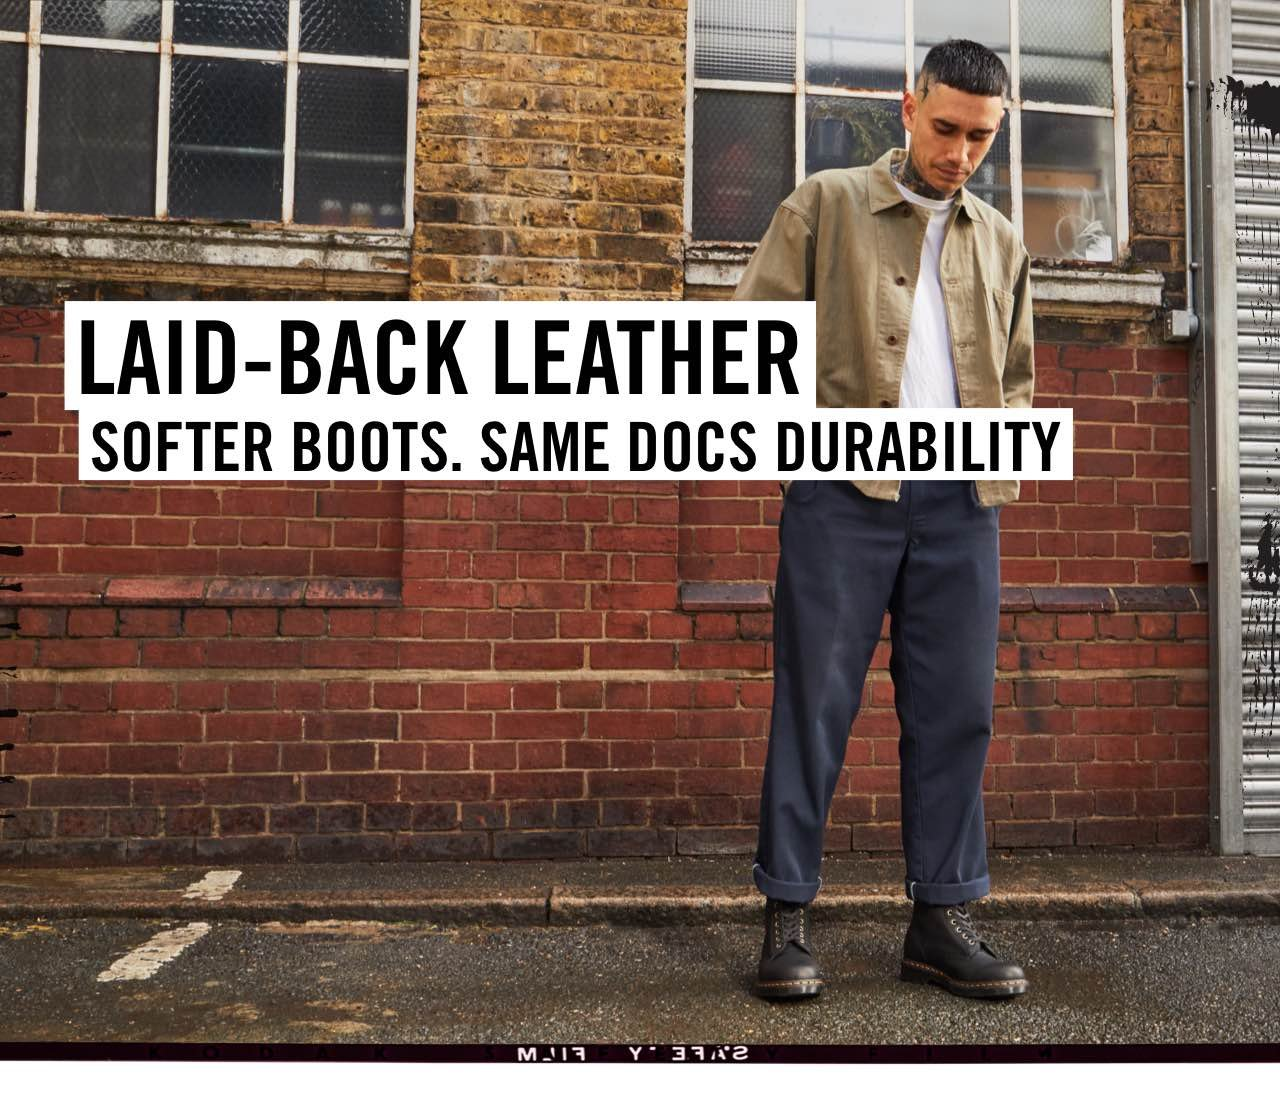 LAIDBACK LEATHER: SOFTER BOOTS, SAME DOCS DURABILITY